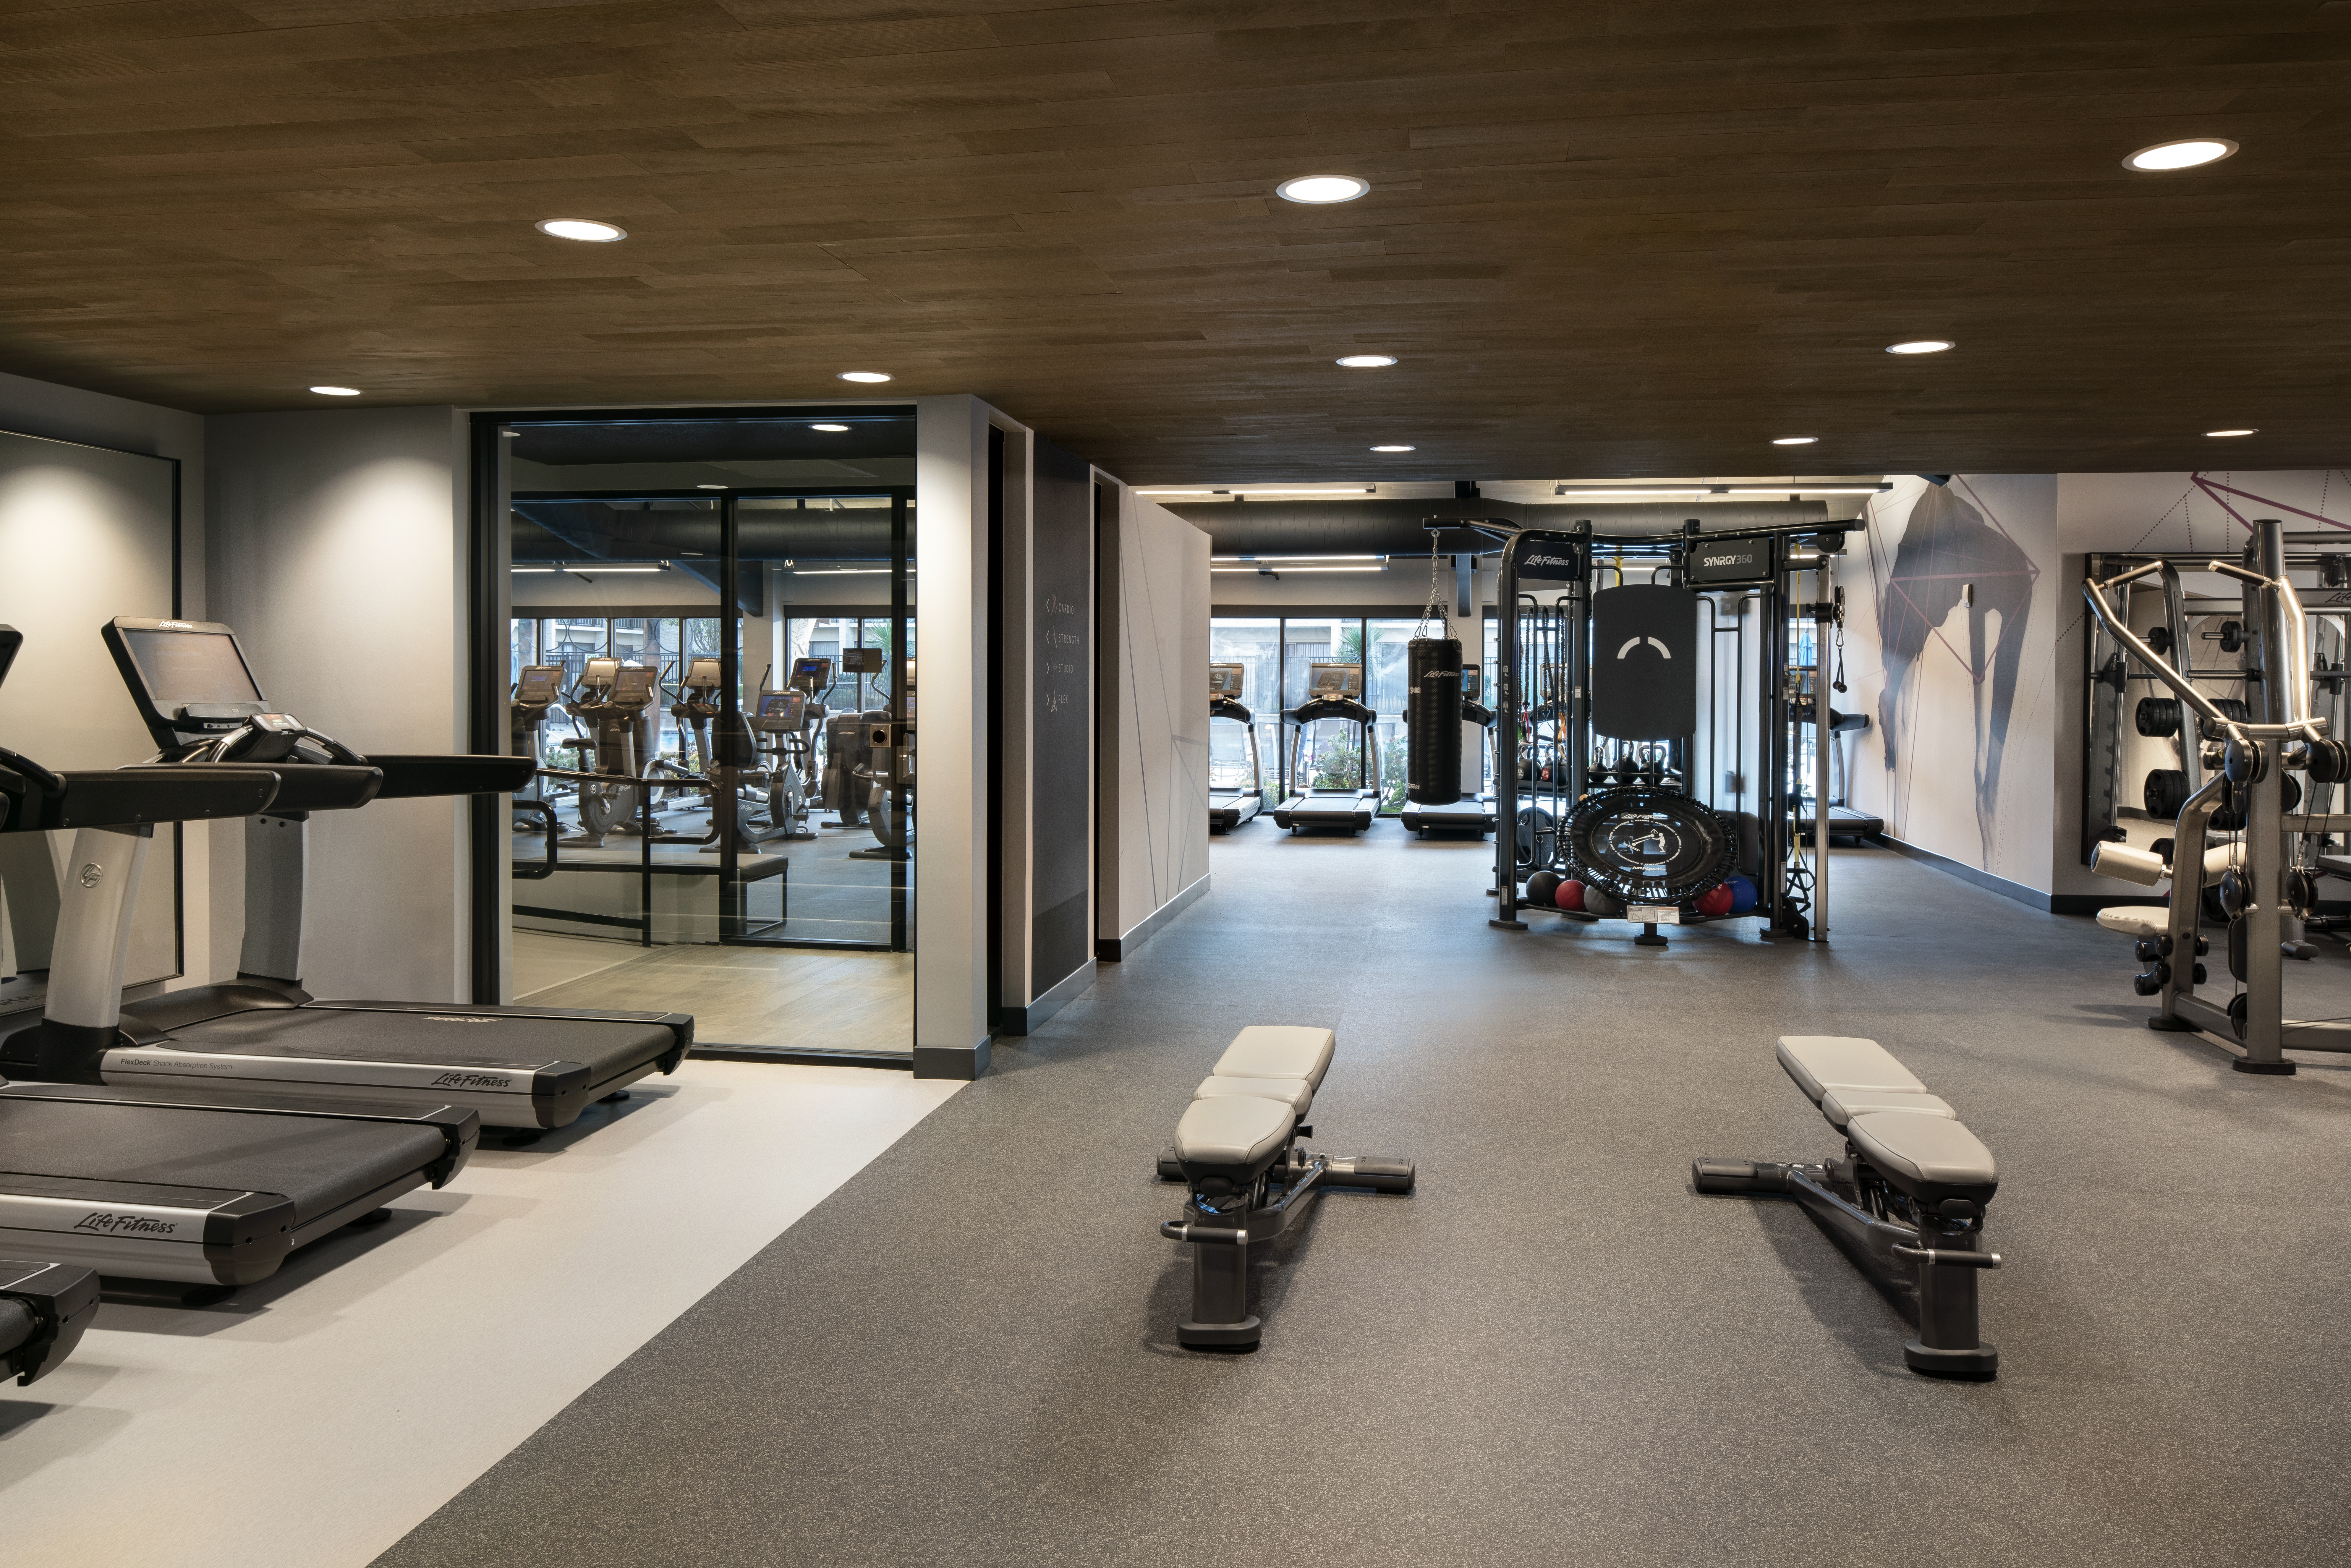 The new fitness center has views of the pool deck.